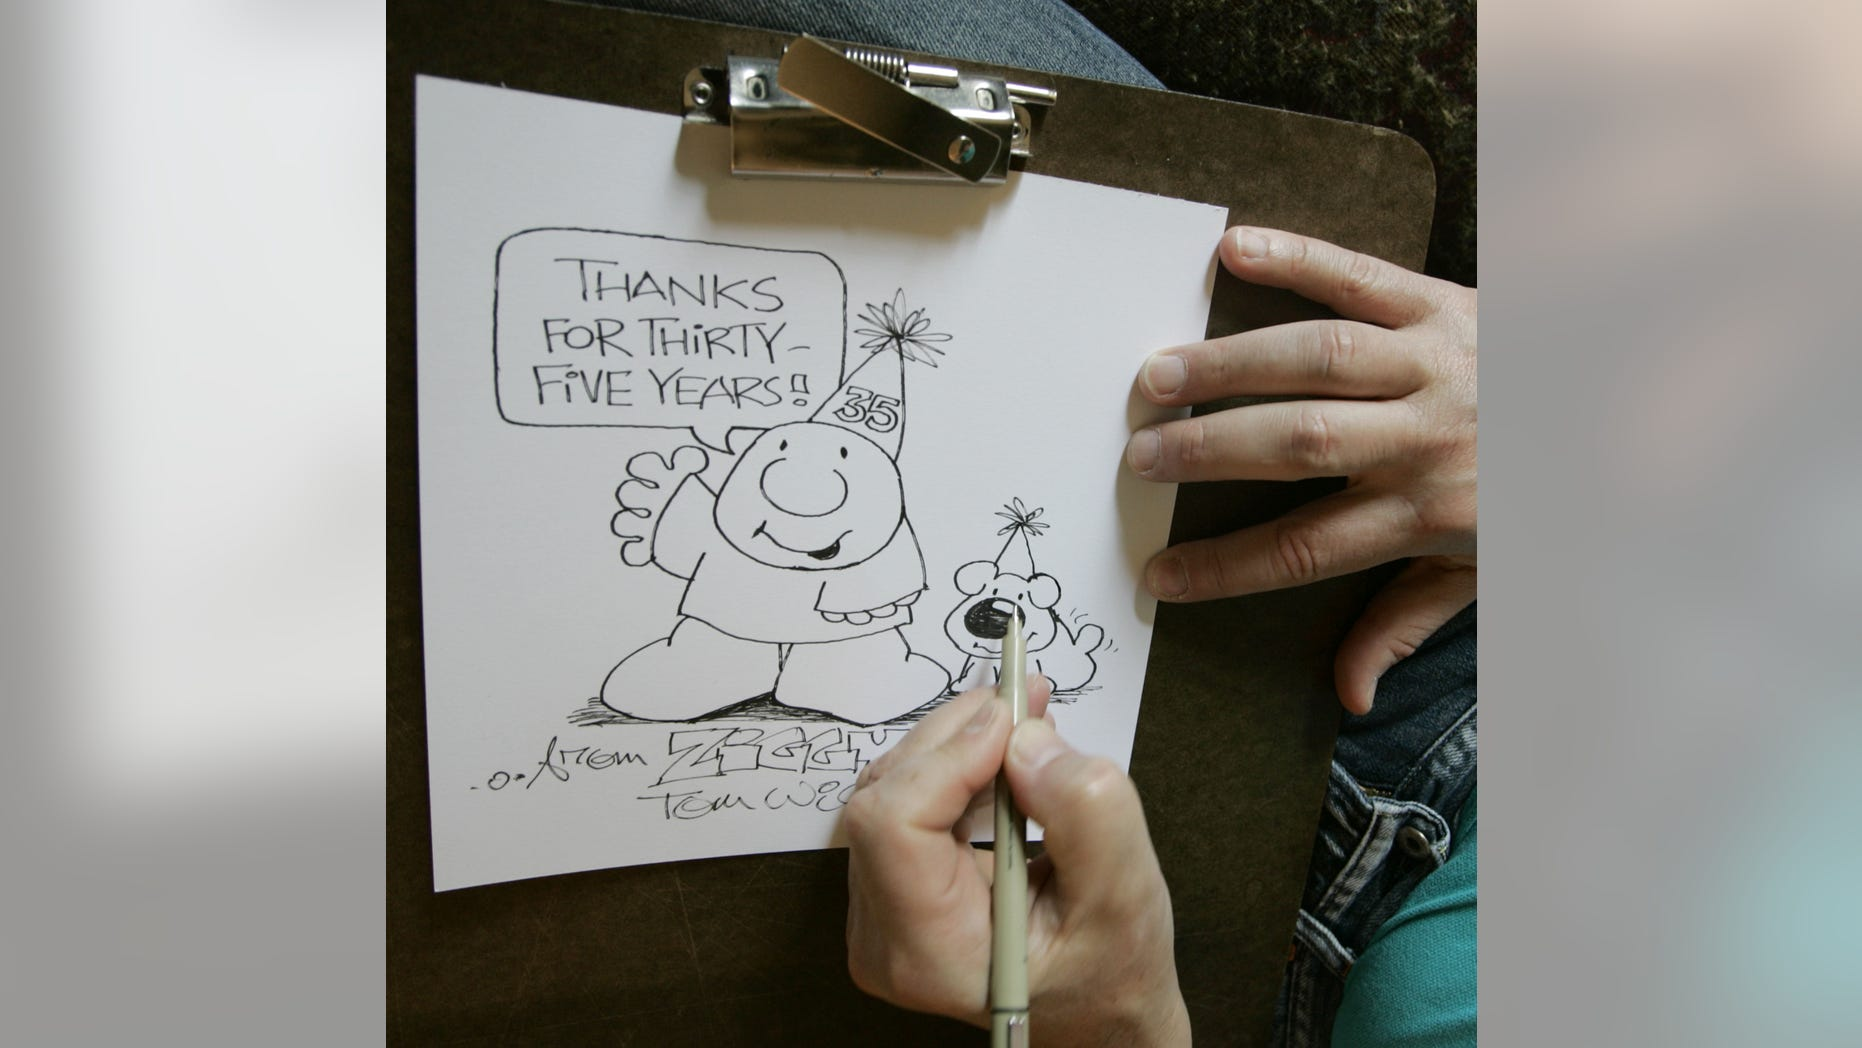 In this June 23, 2006 photo, Artist Tom Wilson Jr. draws a Ziggy cartoon celebrating the strip's 35th anniversary at his home in Loveland, Ohio.  Tom Wilson Sr, the creator of hard-luck comic strip character Ziggy has died, he was 80. Spokesman Josh Peres with Universal Uclick, the Kansas City, Missouri, syndication company formerly known as Universal Press Syndicate, says Wilson Sr. died Friday, Sept. 16, 2011 after a long illness. Wilson's son, Tom Wilson Jr., who has produced the panel since 1987, says his father died of pneumonia at a Cincinnati hospital.